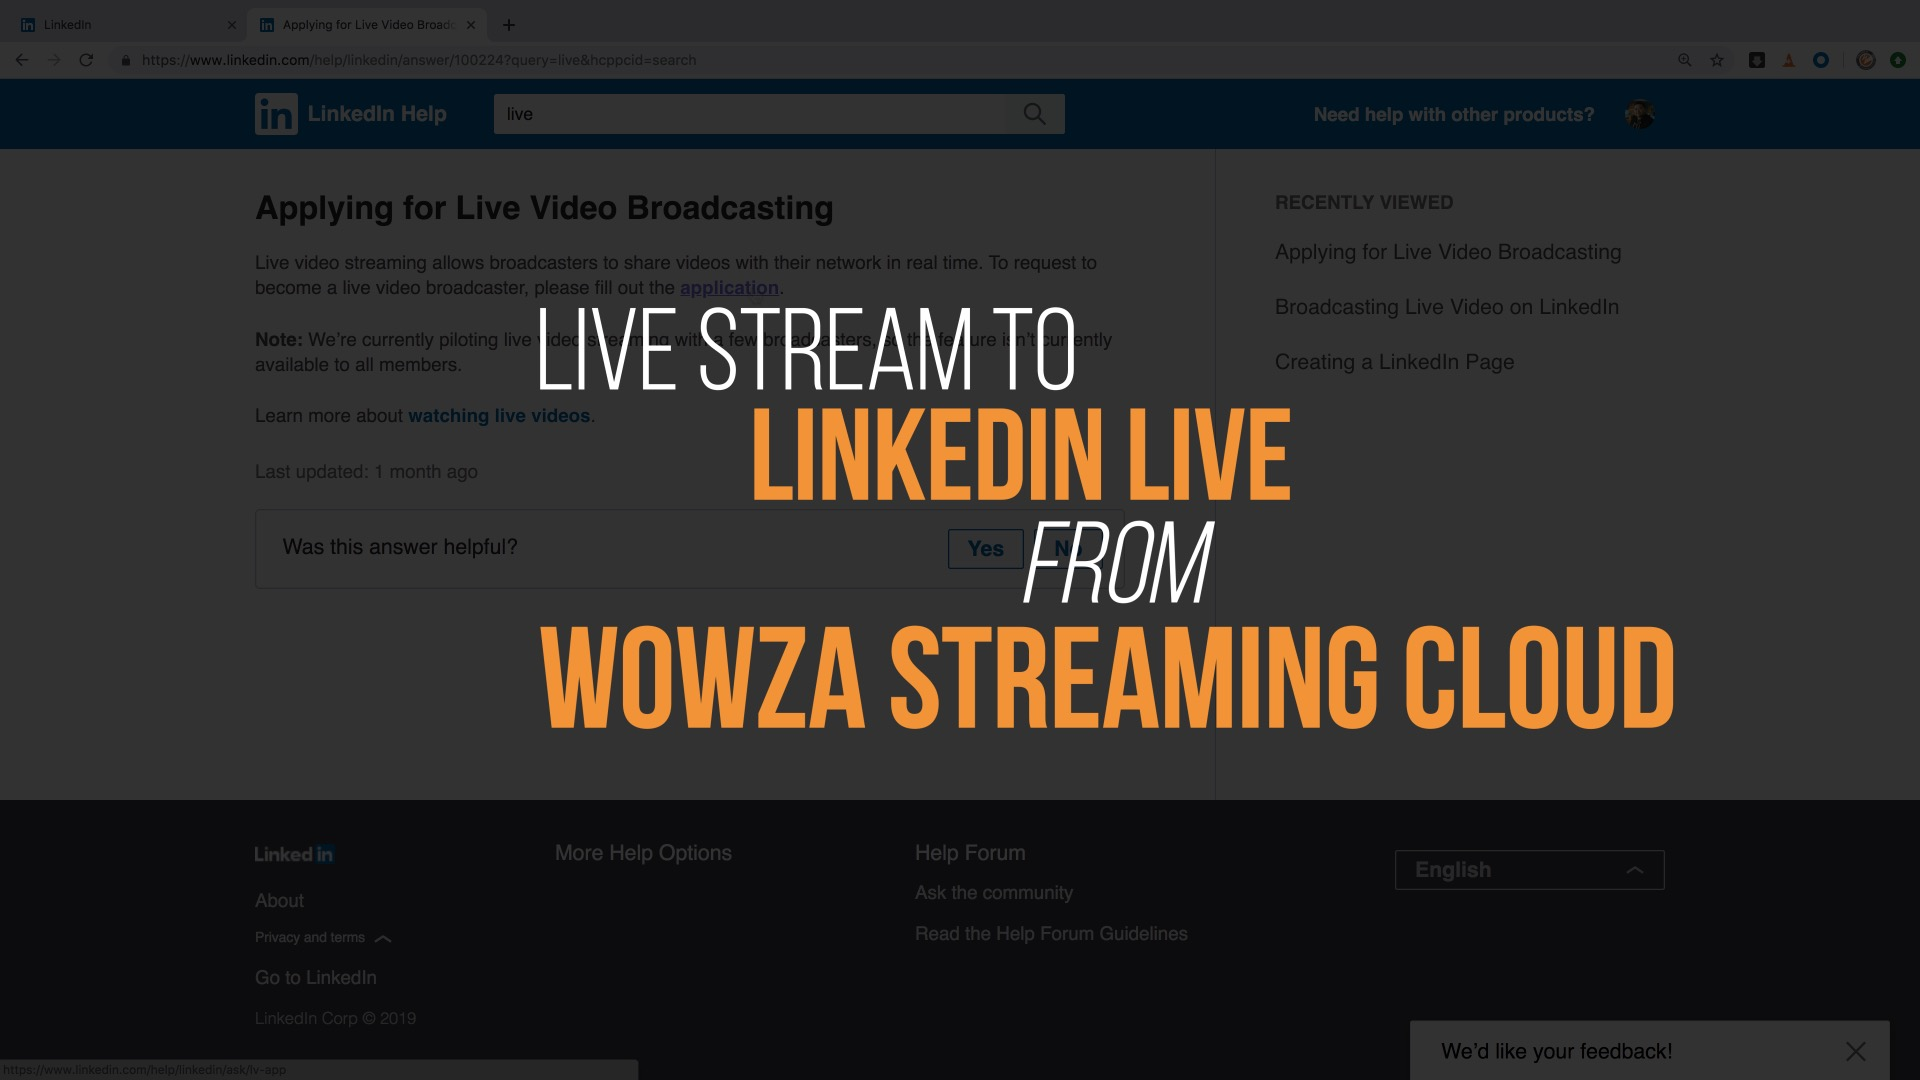 Stream to LinkedIn Live from Wowza Streaming Cloud